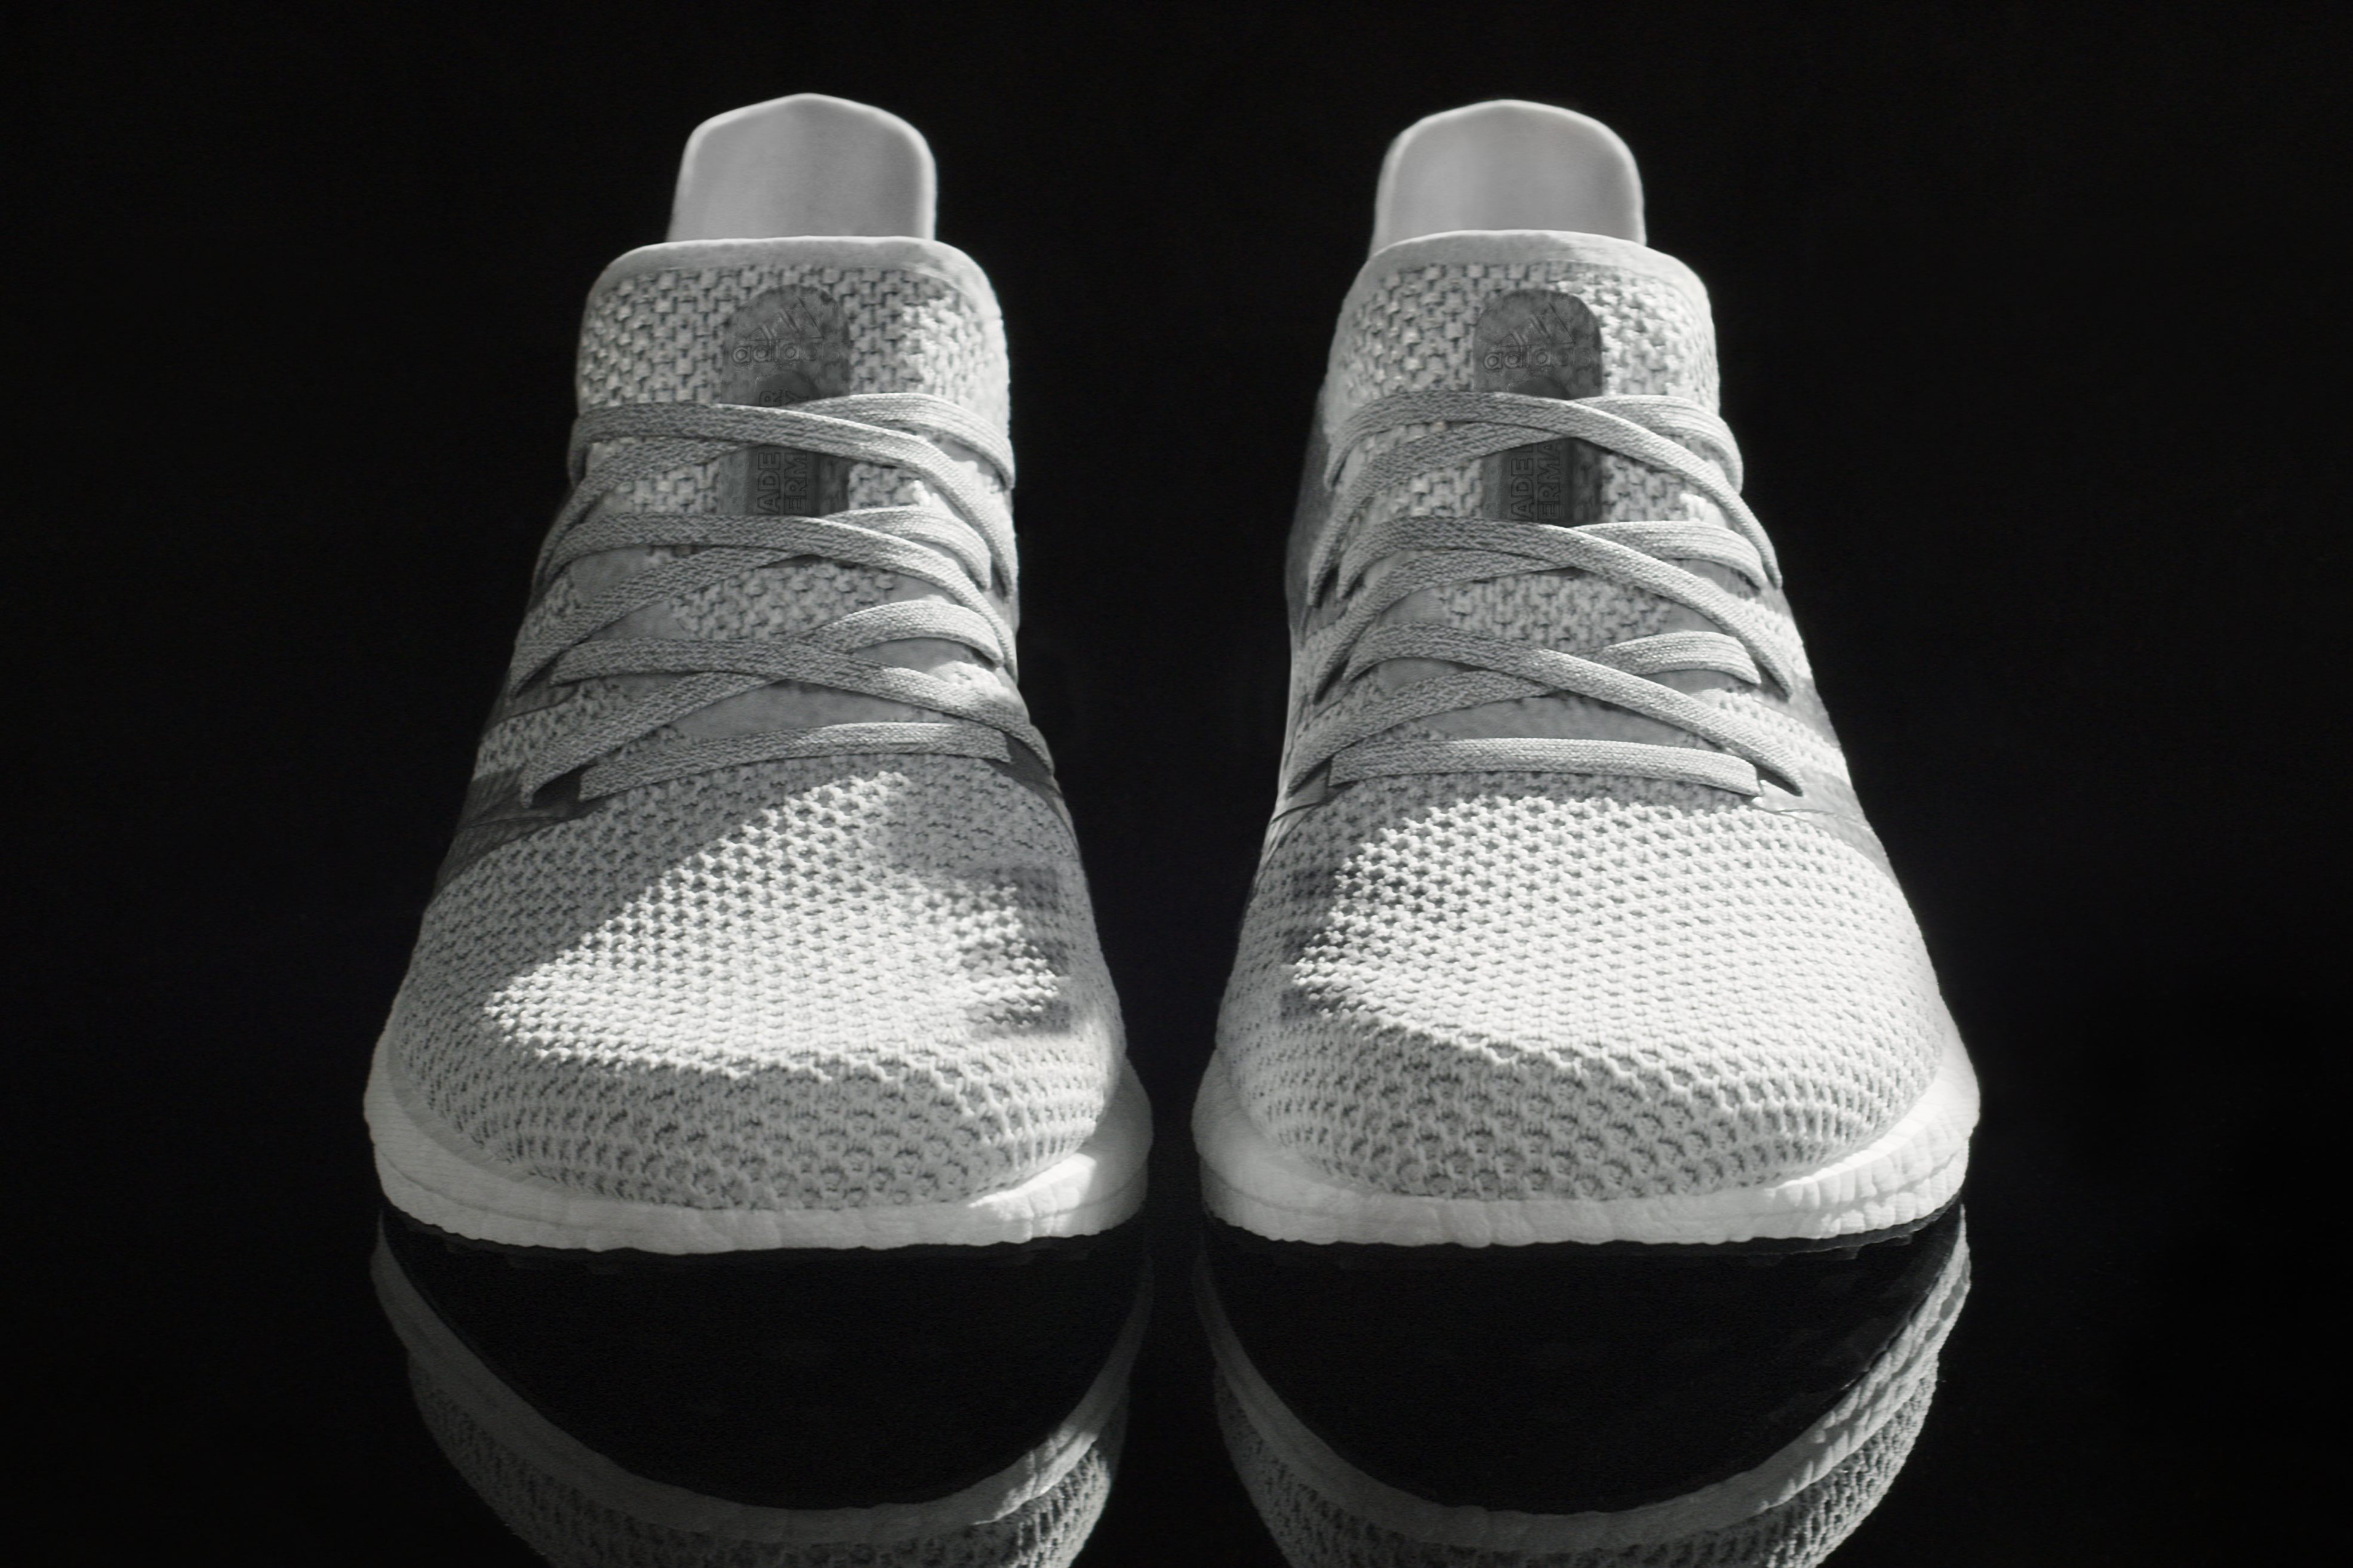 A pair of white and grey sneakers, seen from the front, on a black background. The laces are part of the shoe, you don't have to tie them. They are covered in a sort of mesh.